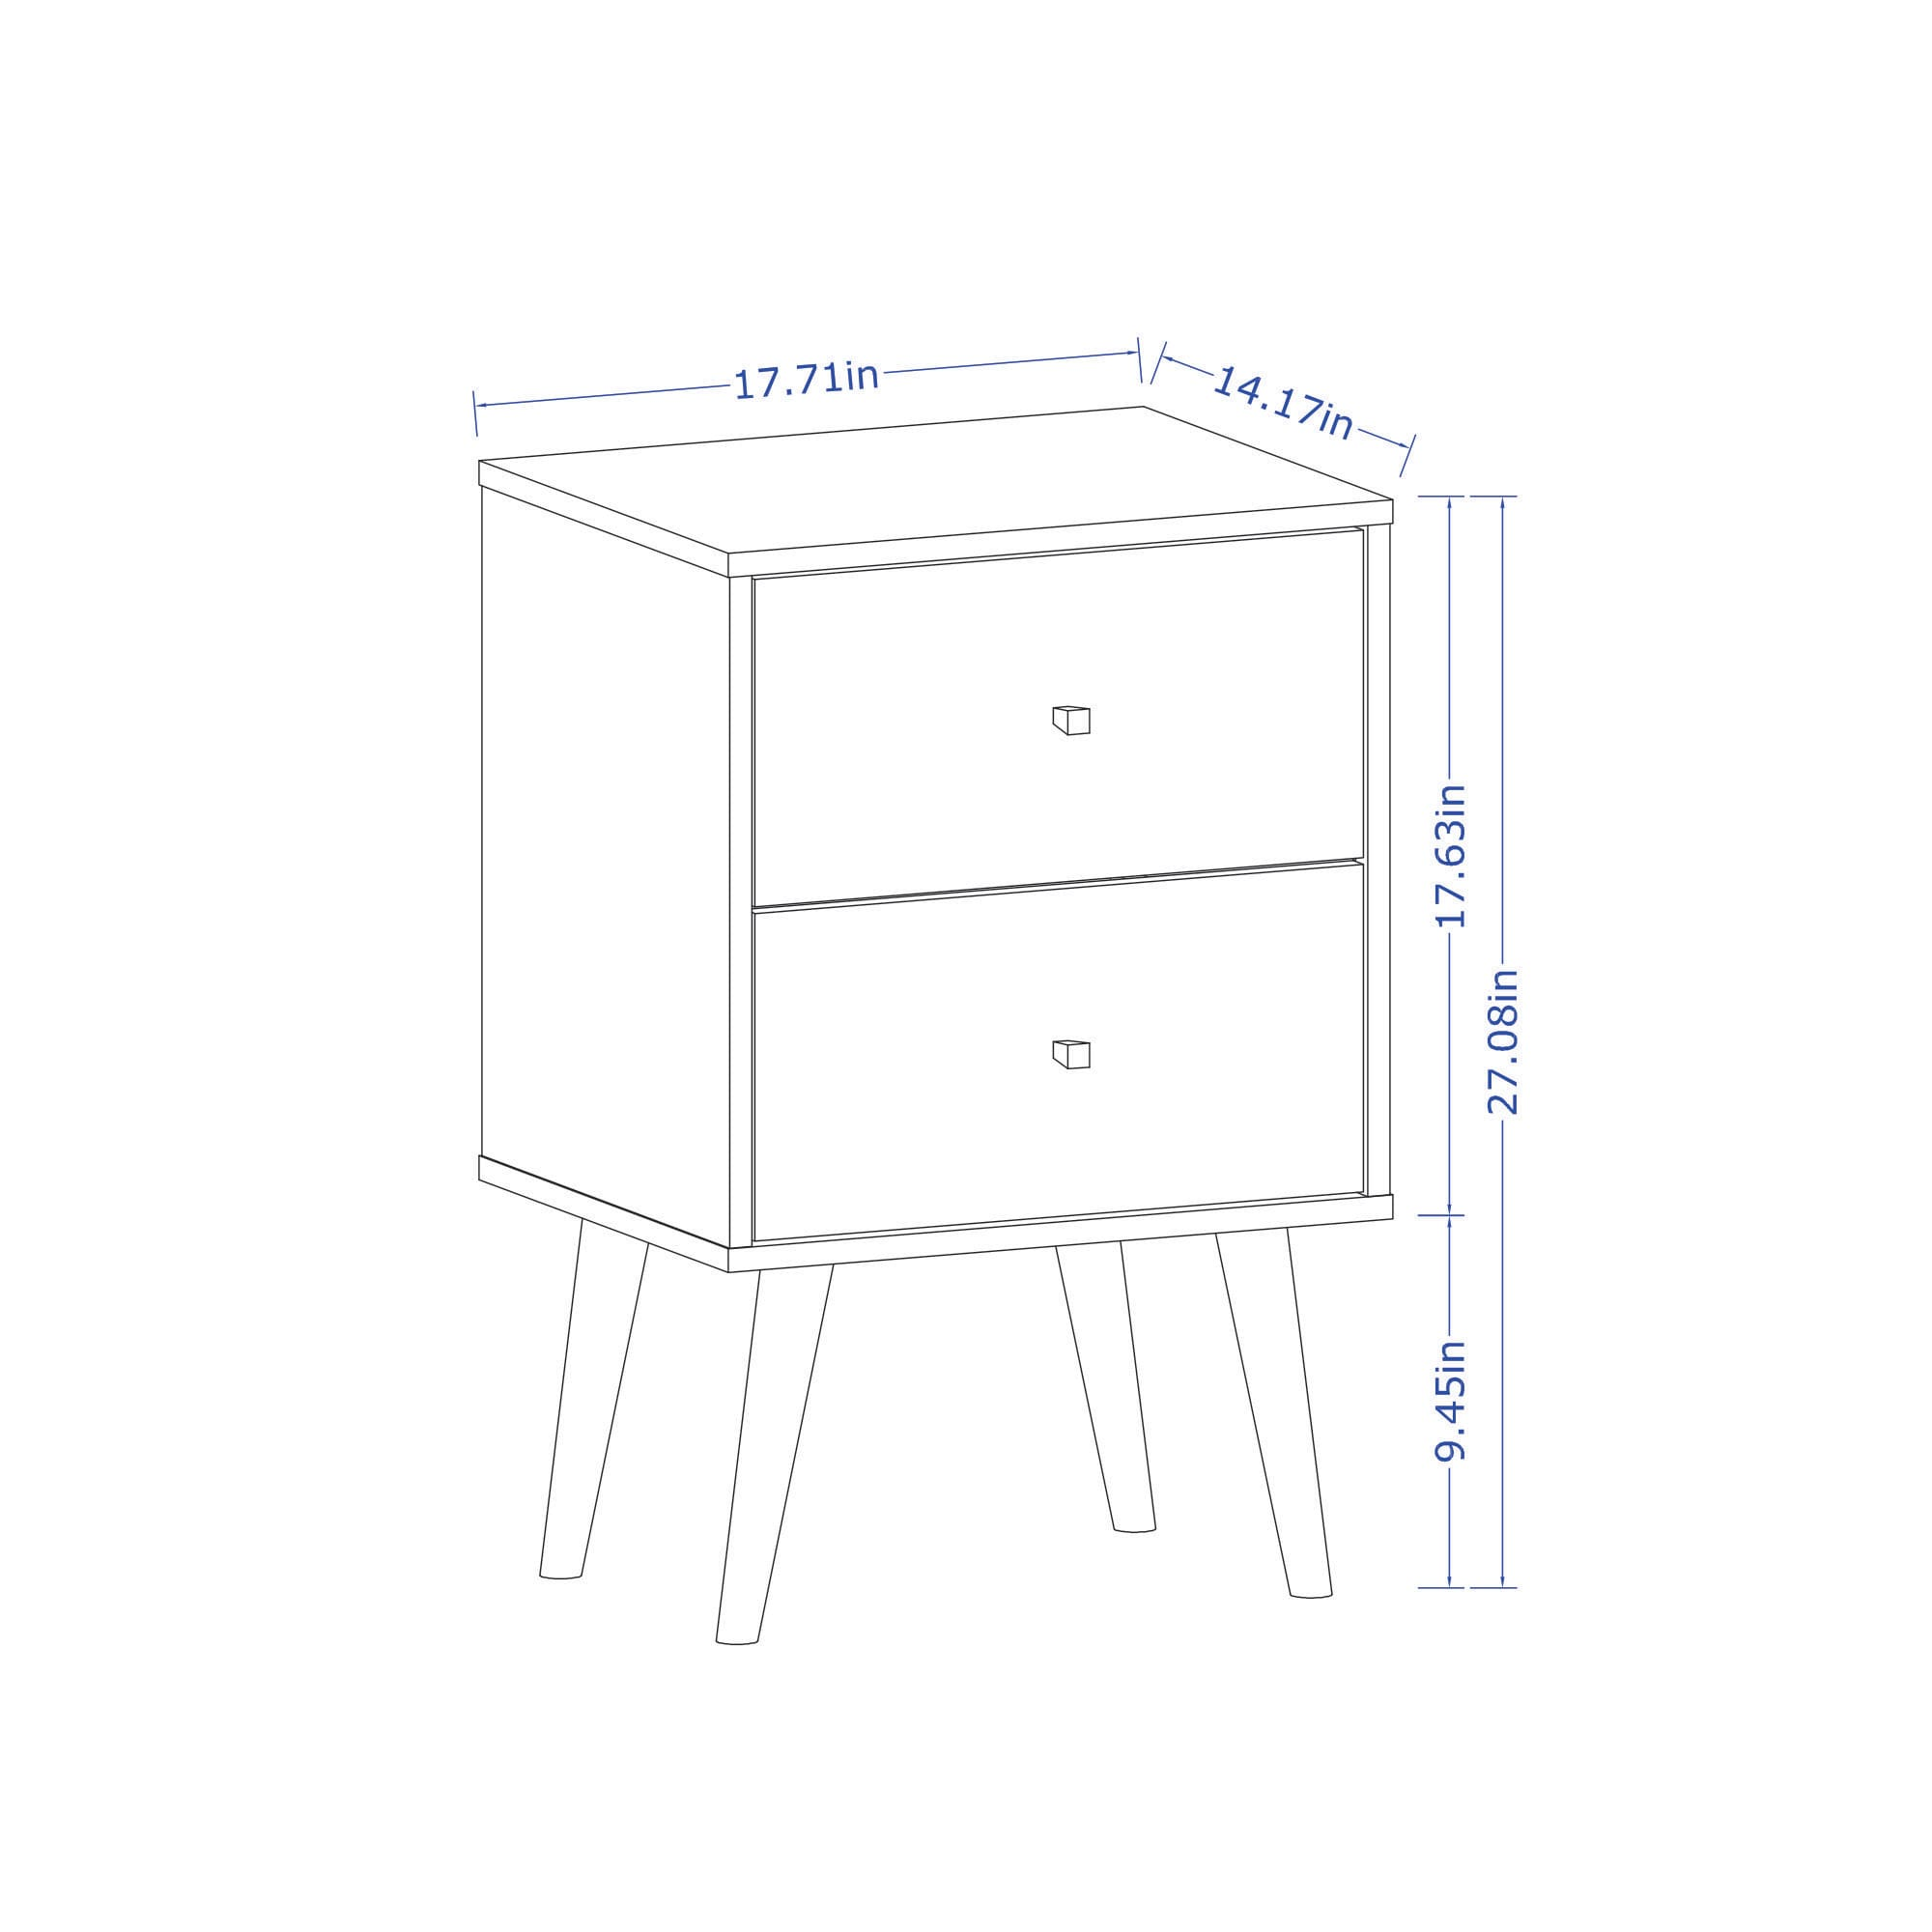 Liberty White Mid Century Modern Nightstand 2 0 W 2 Full Extension Drawers Solid Wood Legs By Manhattan Comfort